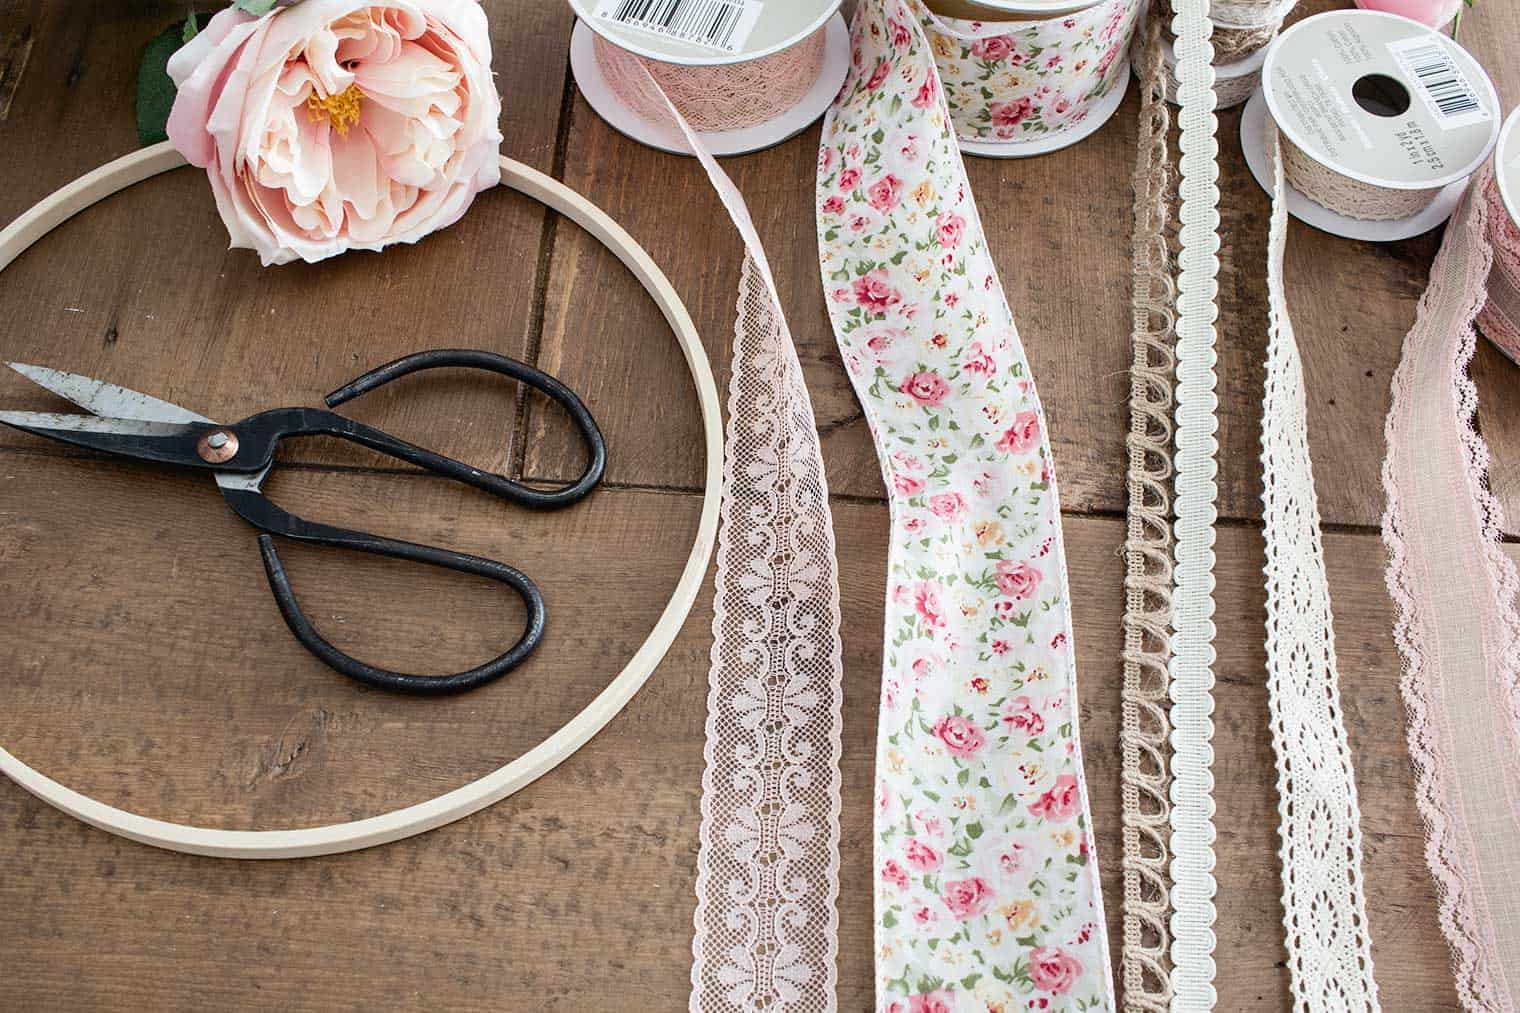 blush pink ribbons on table ready to cut with vintage black scissors